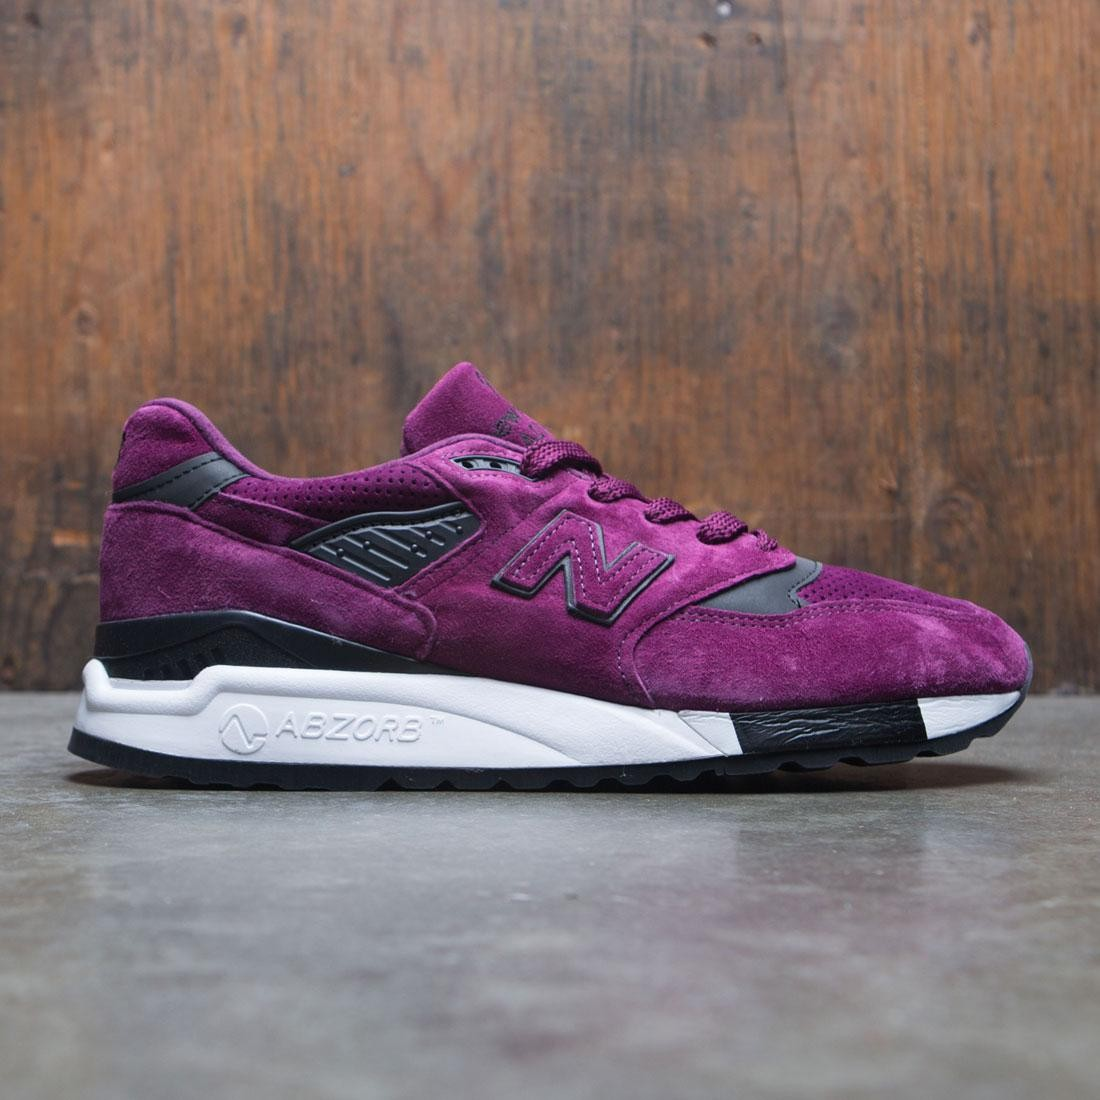 promo code a5f77 51cbe New Balance Men 998 Color Spectrum M998CM - Made In USA (purple / imperial  / black)